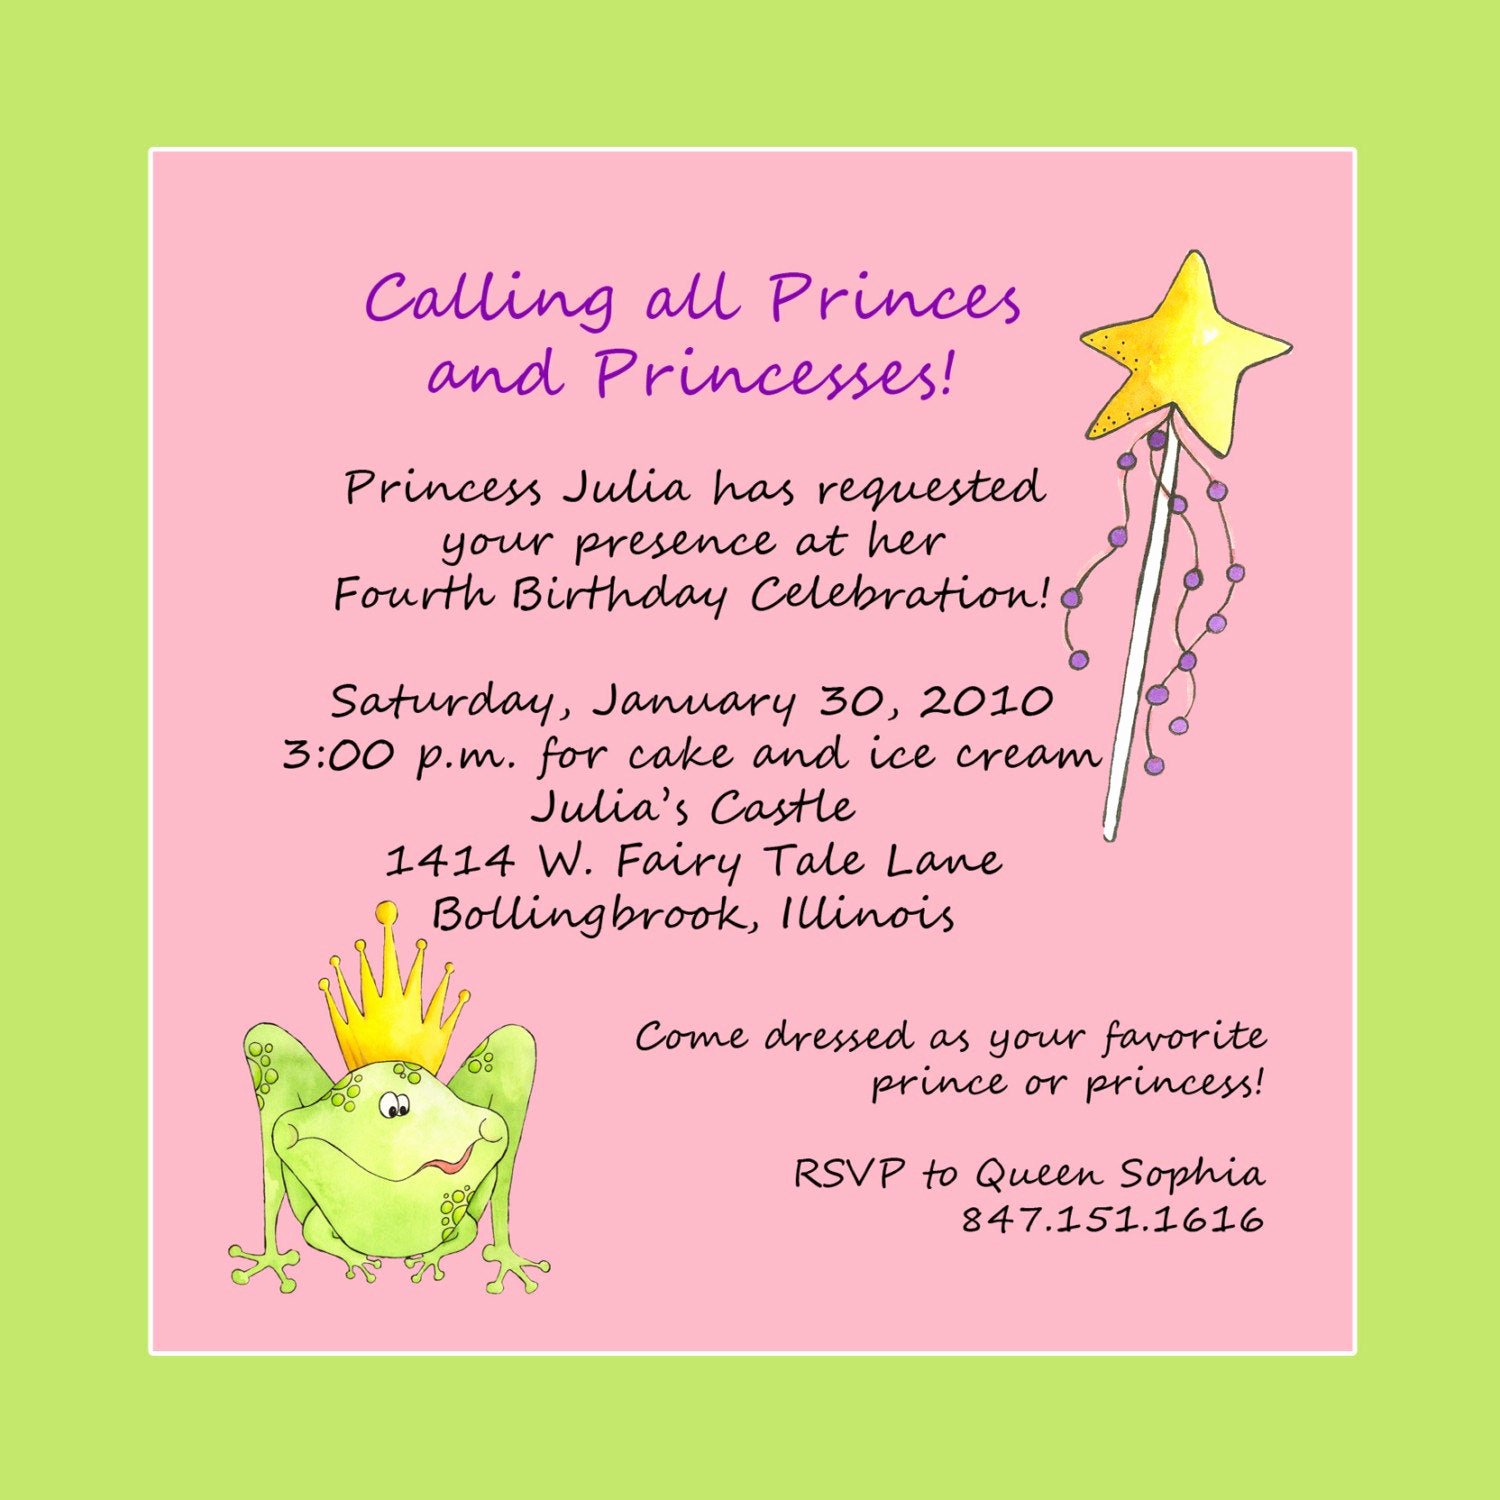 After Party Invitation Wording Awesome Princess theme Birthday Party Invitation Custom Wording